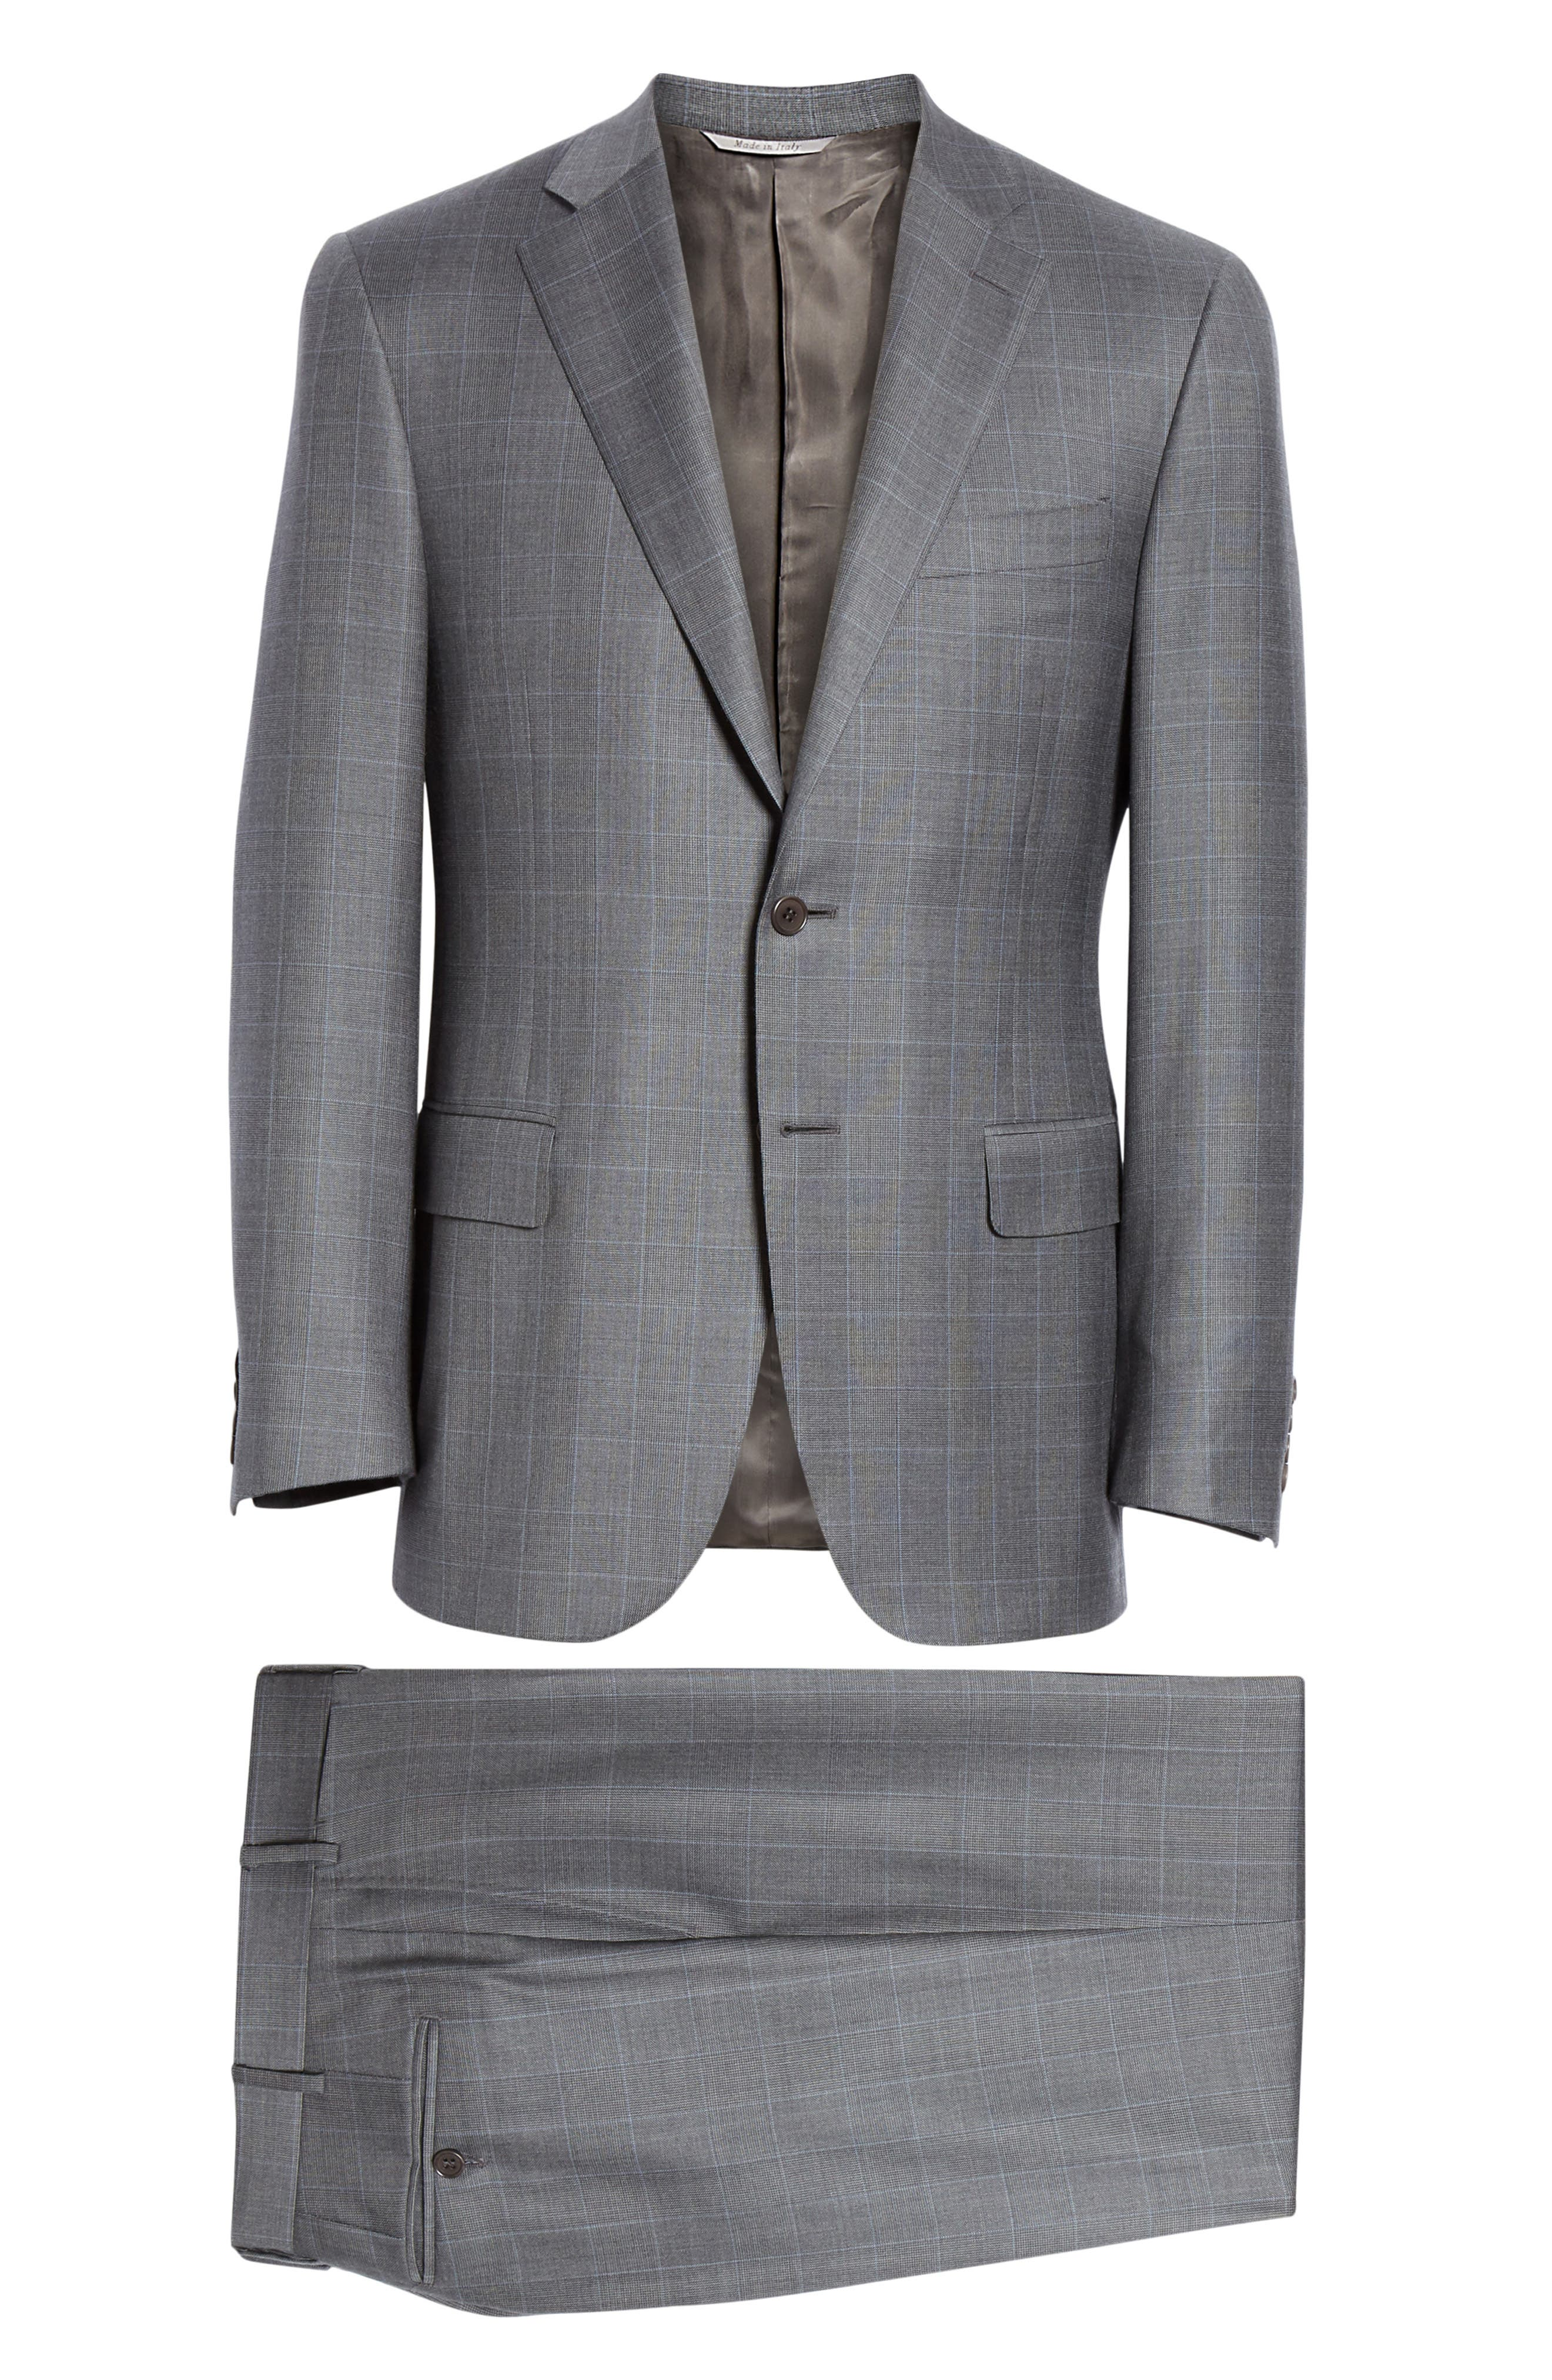 Sienna Classic Fit Plaid Wool Suit,                             Alternate thumbnail 8, color,                             GREY